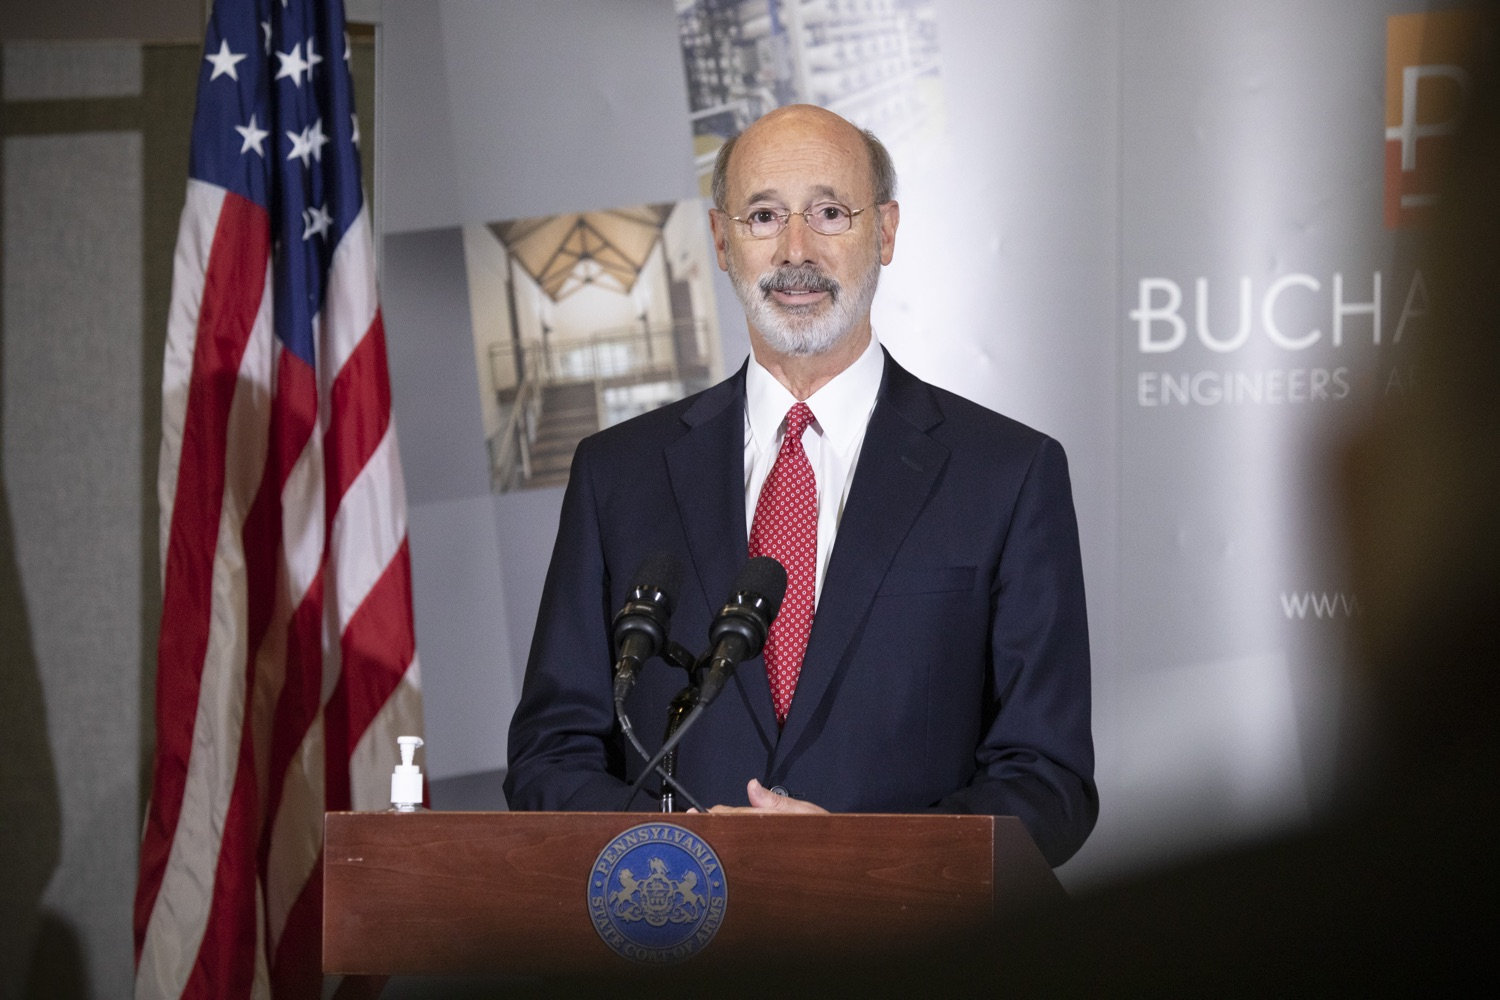 "<a href=""https://filesource.wostreaming.net/commonwealthofpa/photo/18250_gov_covidFunding_dz_018.jpg"" target=""_blank"">⇣ Download Photo<br></a>Pennsylvania Governor Tom Wolf speaking to the press.  As small businesses continue to feel an economic impact of the COVID-19 public health crisis, Governor Tom Wolf today called on the General Assembly to provide additional funding to support these businesses. The governor was joined by the York County Economic Alliance, local elected officials and business advocates.  York, PA  September 10, 2020"